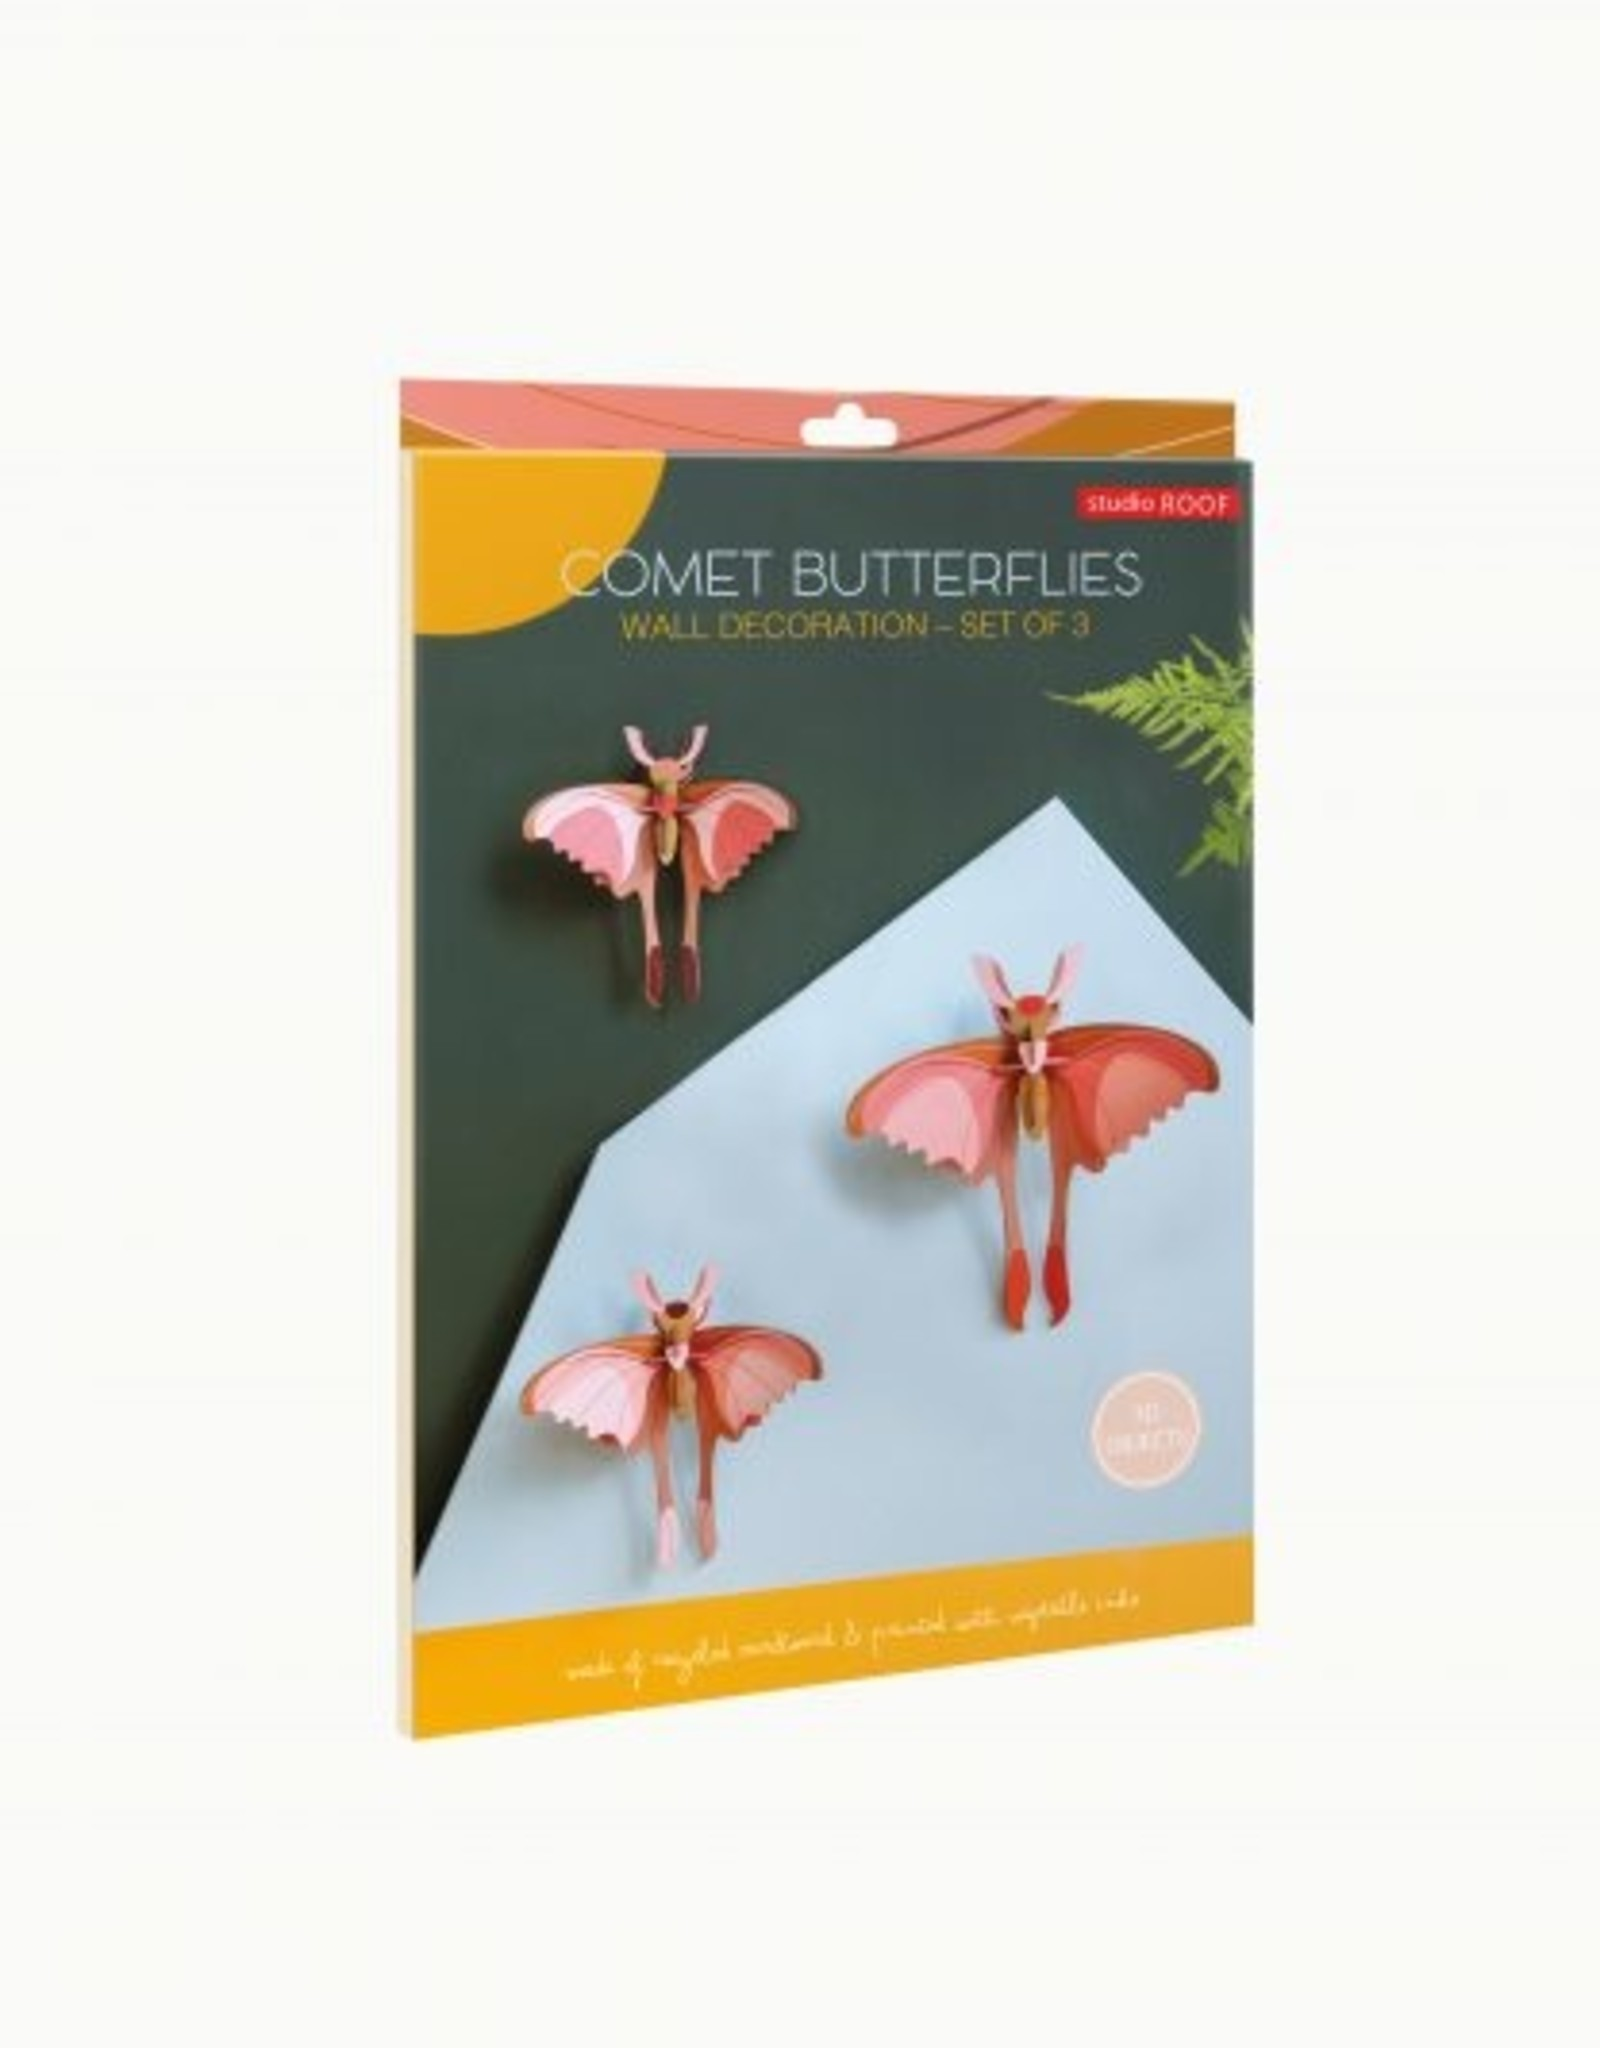 Studioroof Set of 3 - Comet butterflies